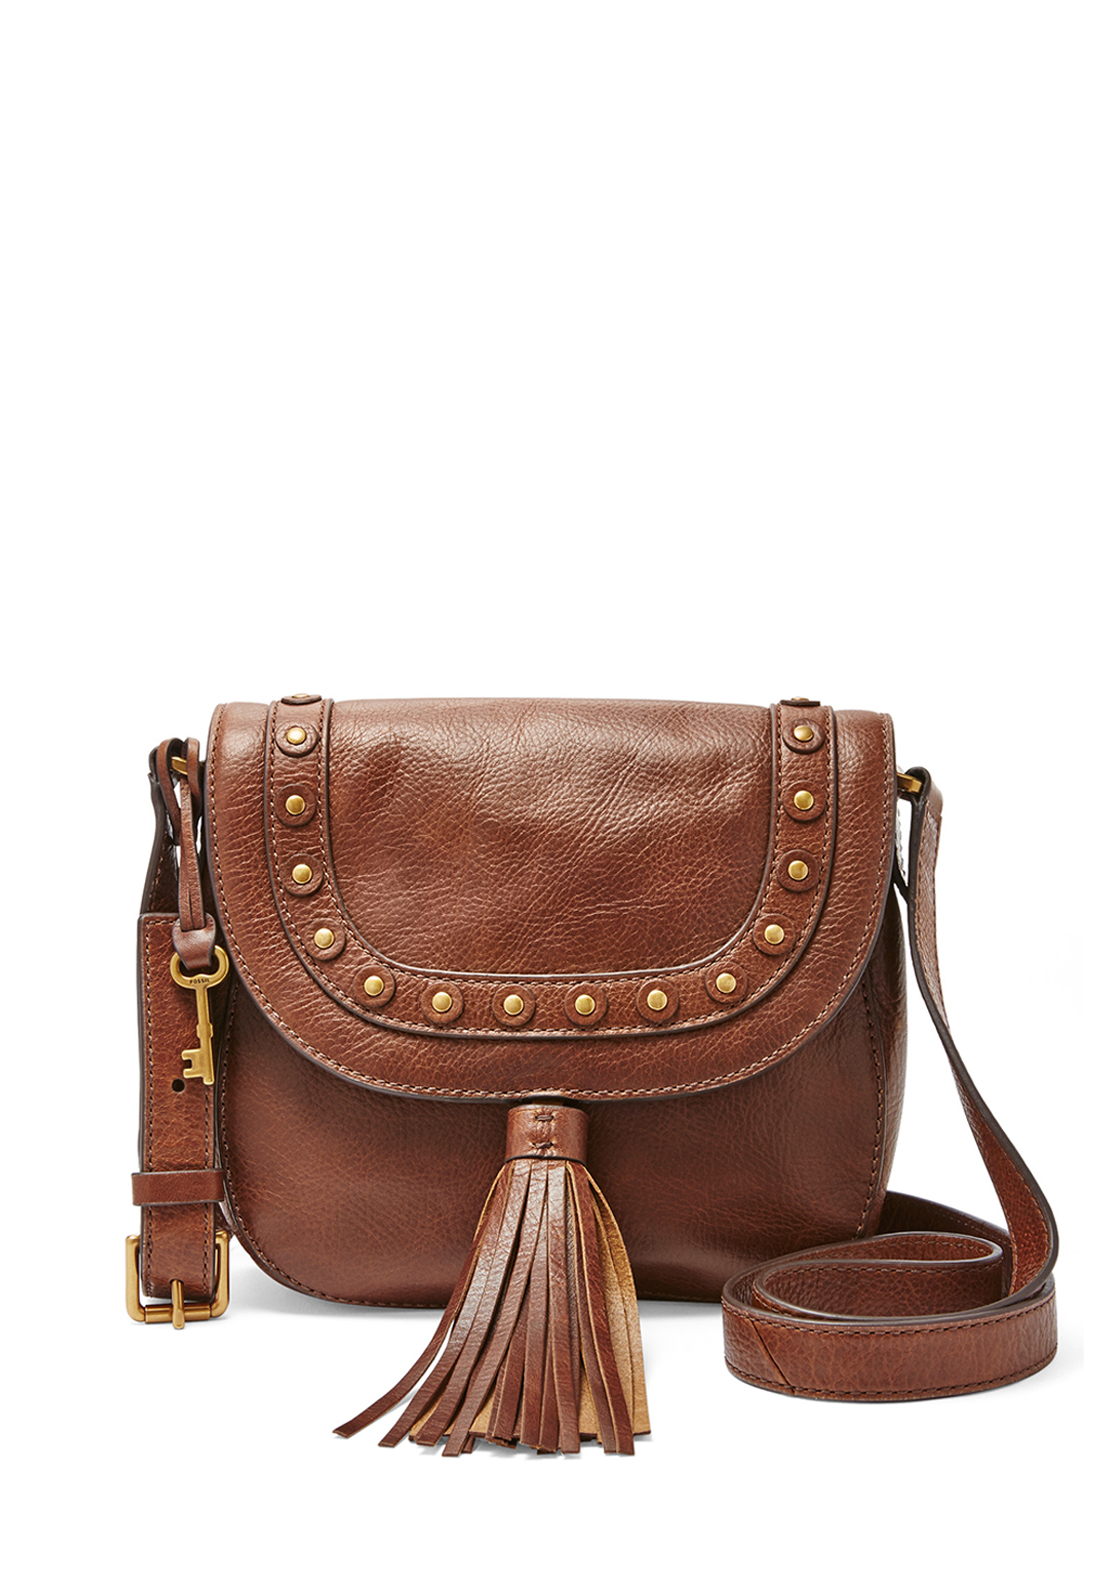 Fossil Emi Tassel Leather Saddle Crossbody Bag, Brown